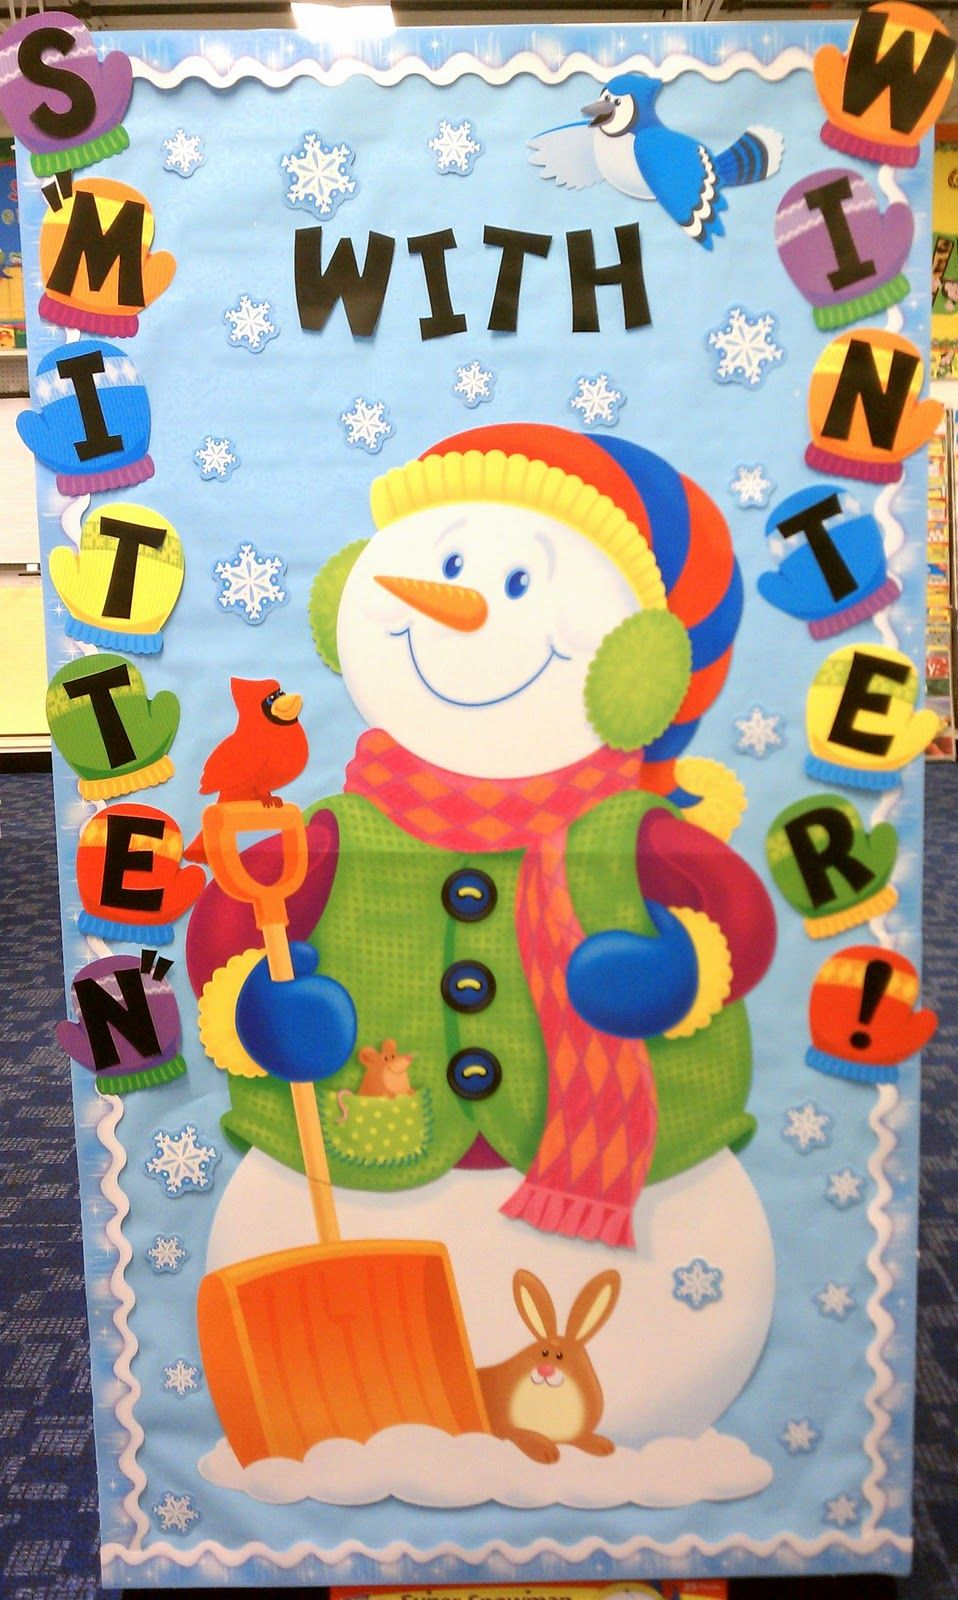 Would Be Cute For Winter Students Could Make And Decorate